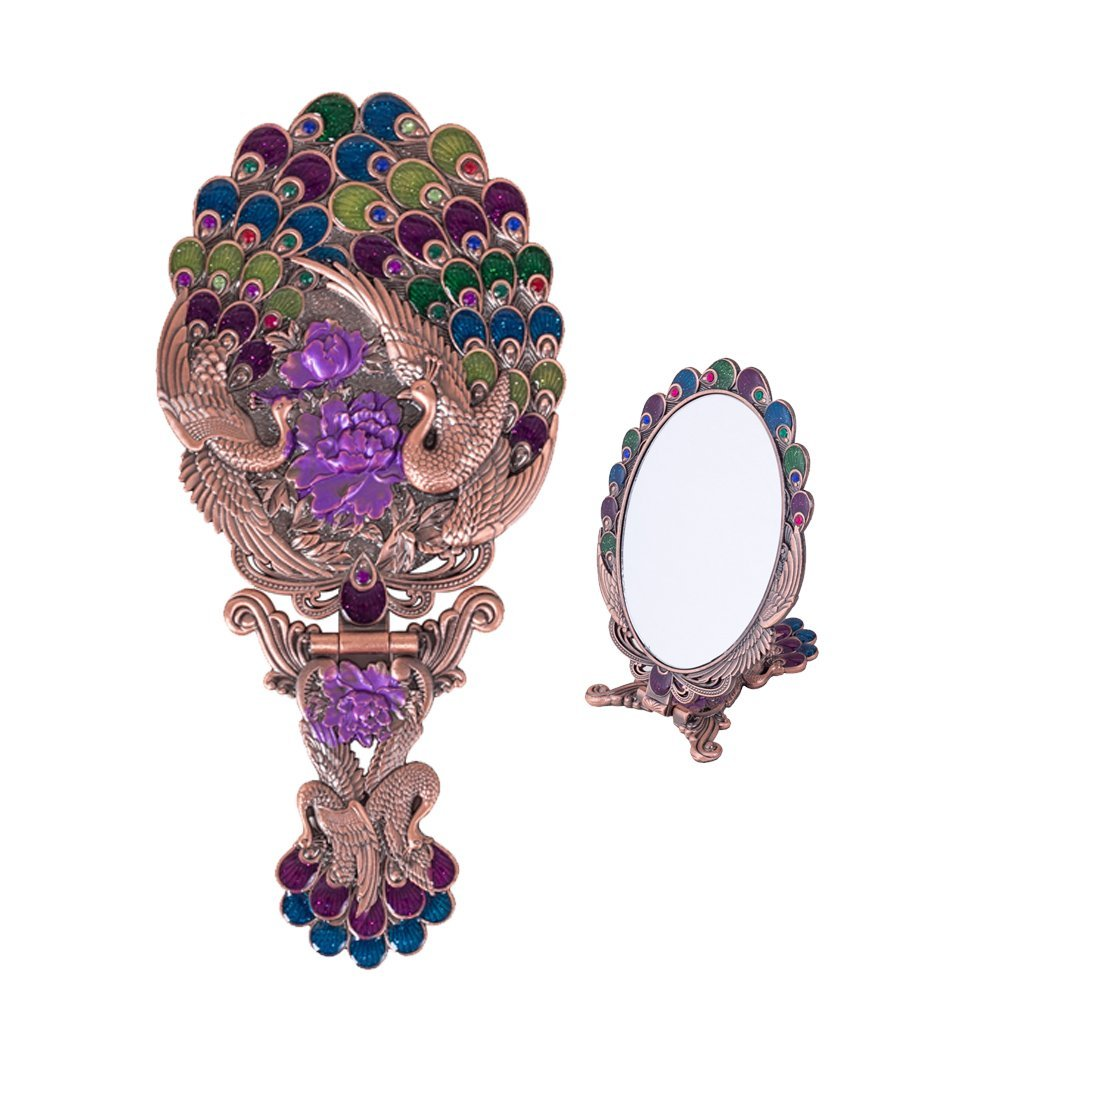 Moiom Vintage Style Metal Foldable Oval Peacock Flower Pattern Makeup Hand/Table Mirror (Copper Red)